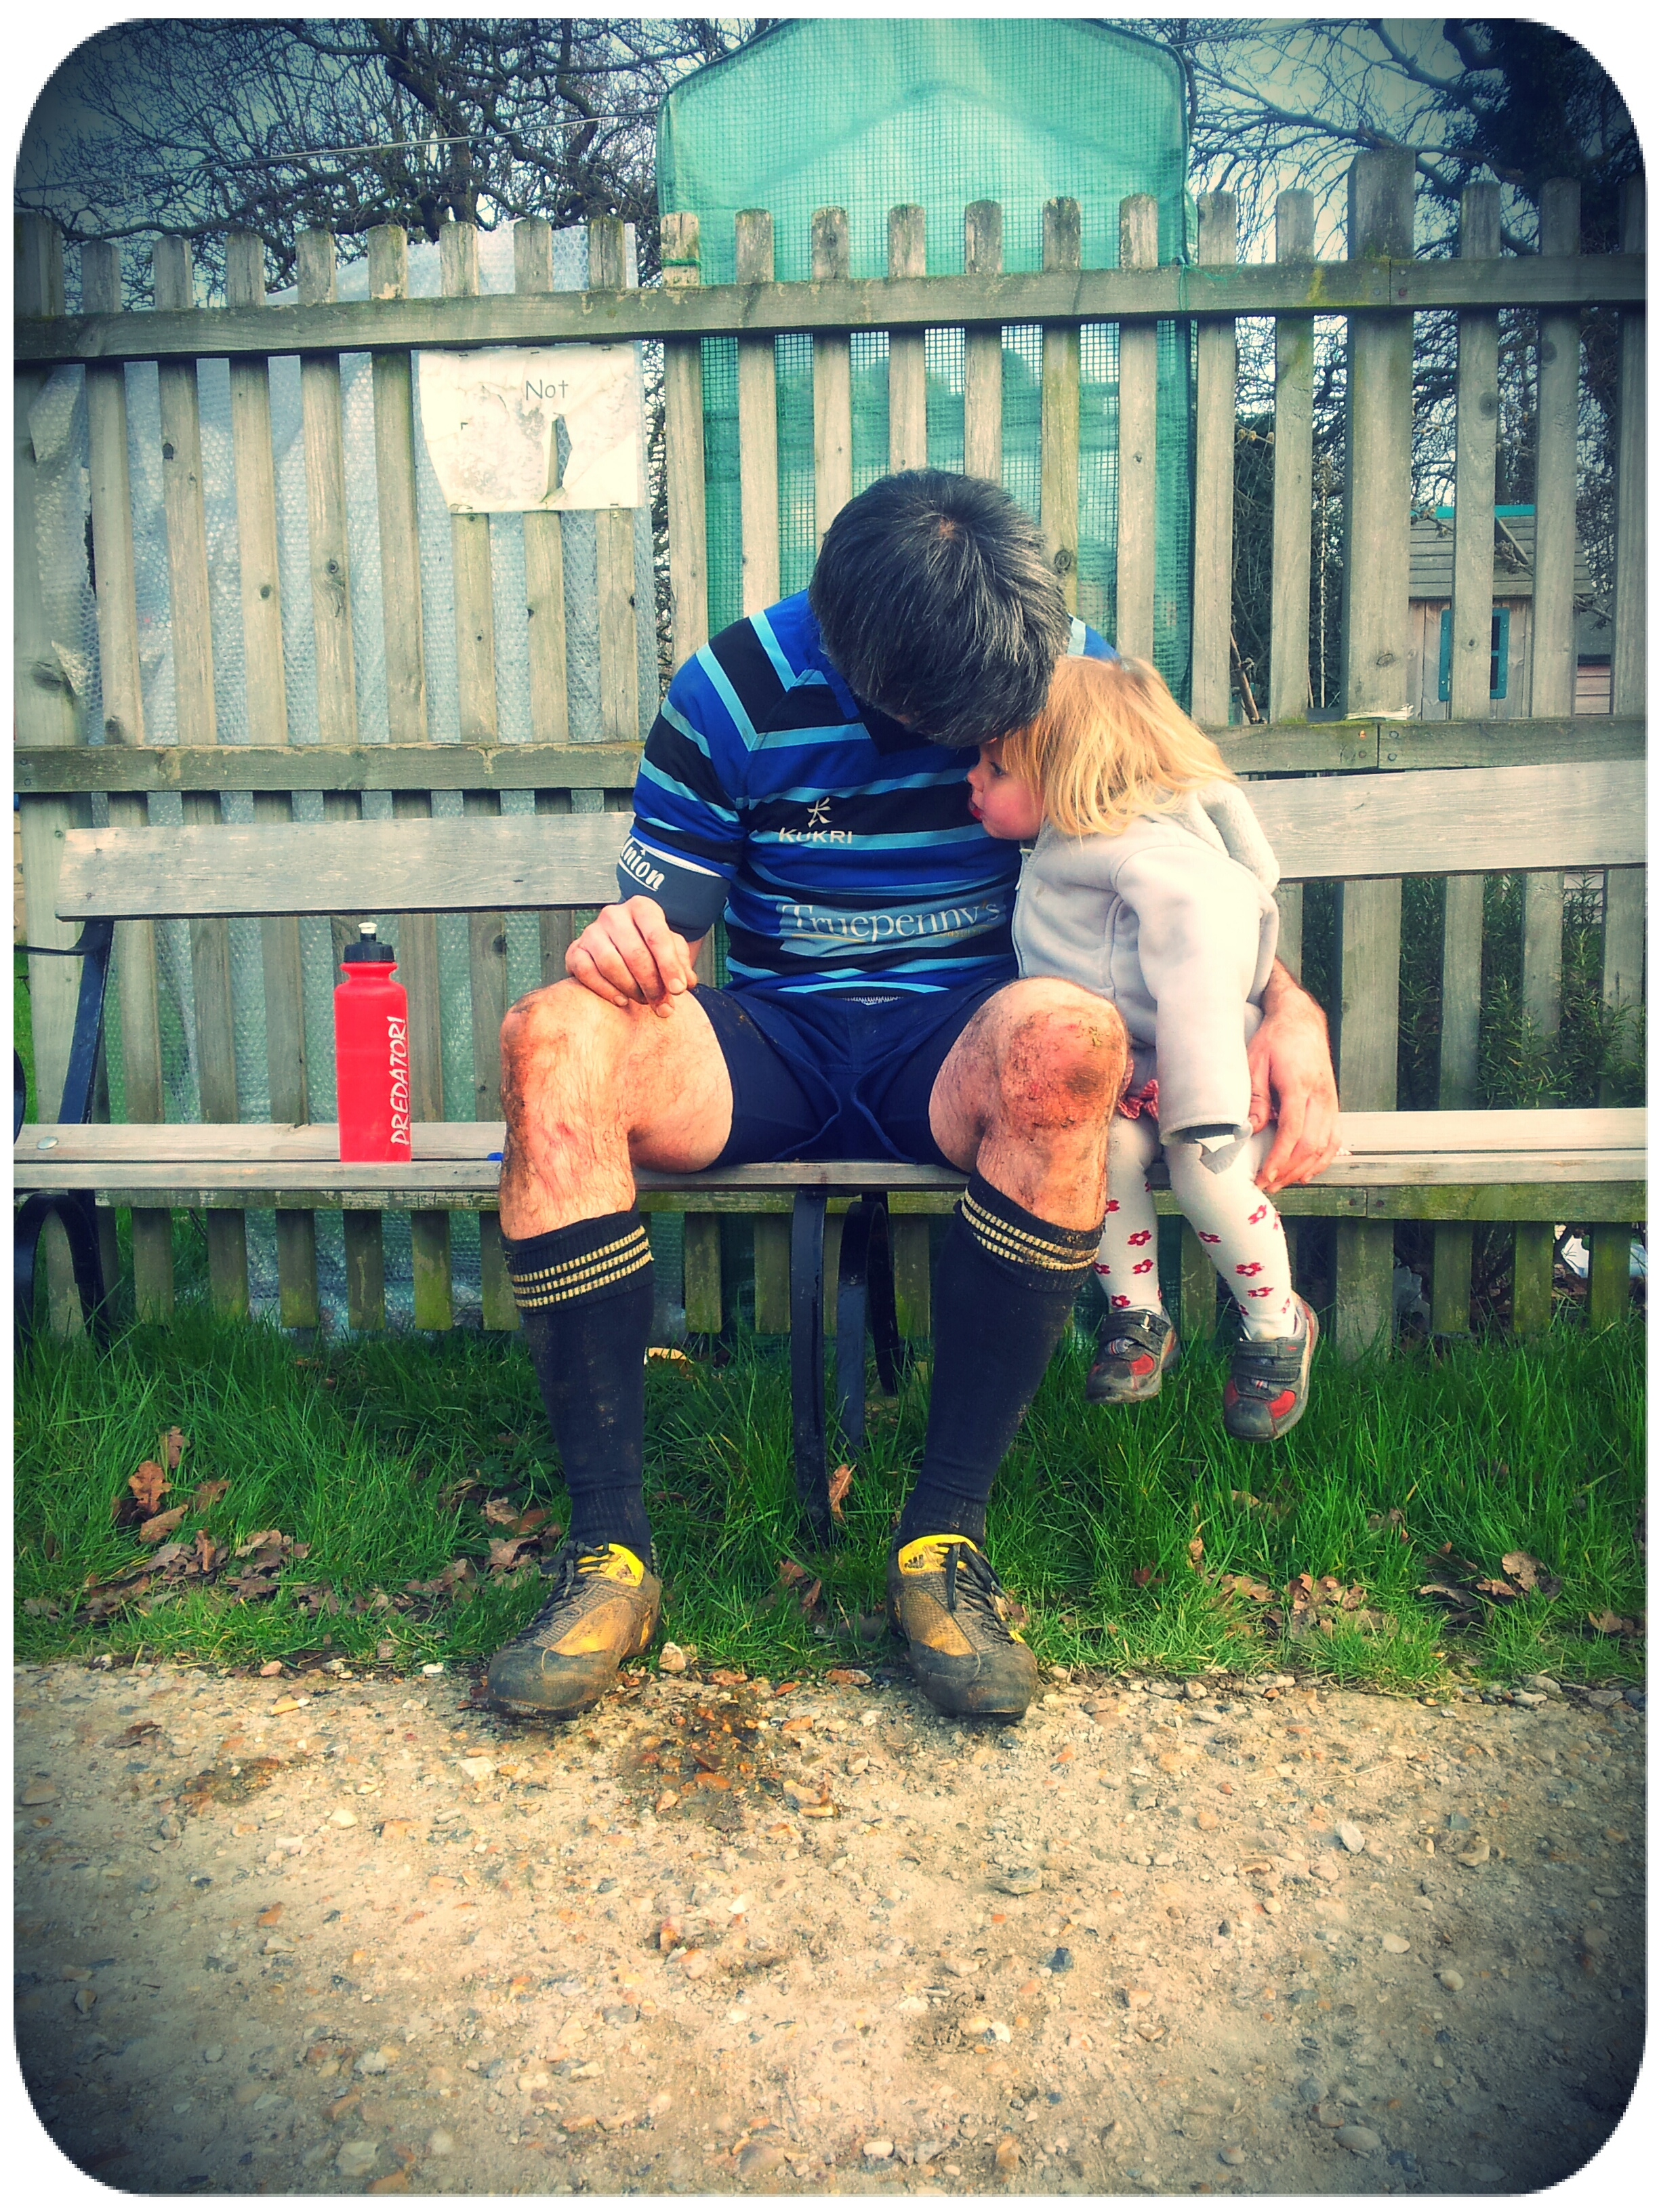 Muddy cuddles for Ramona during Tim's game of rugby